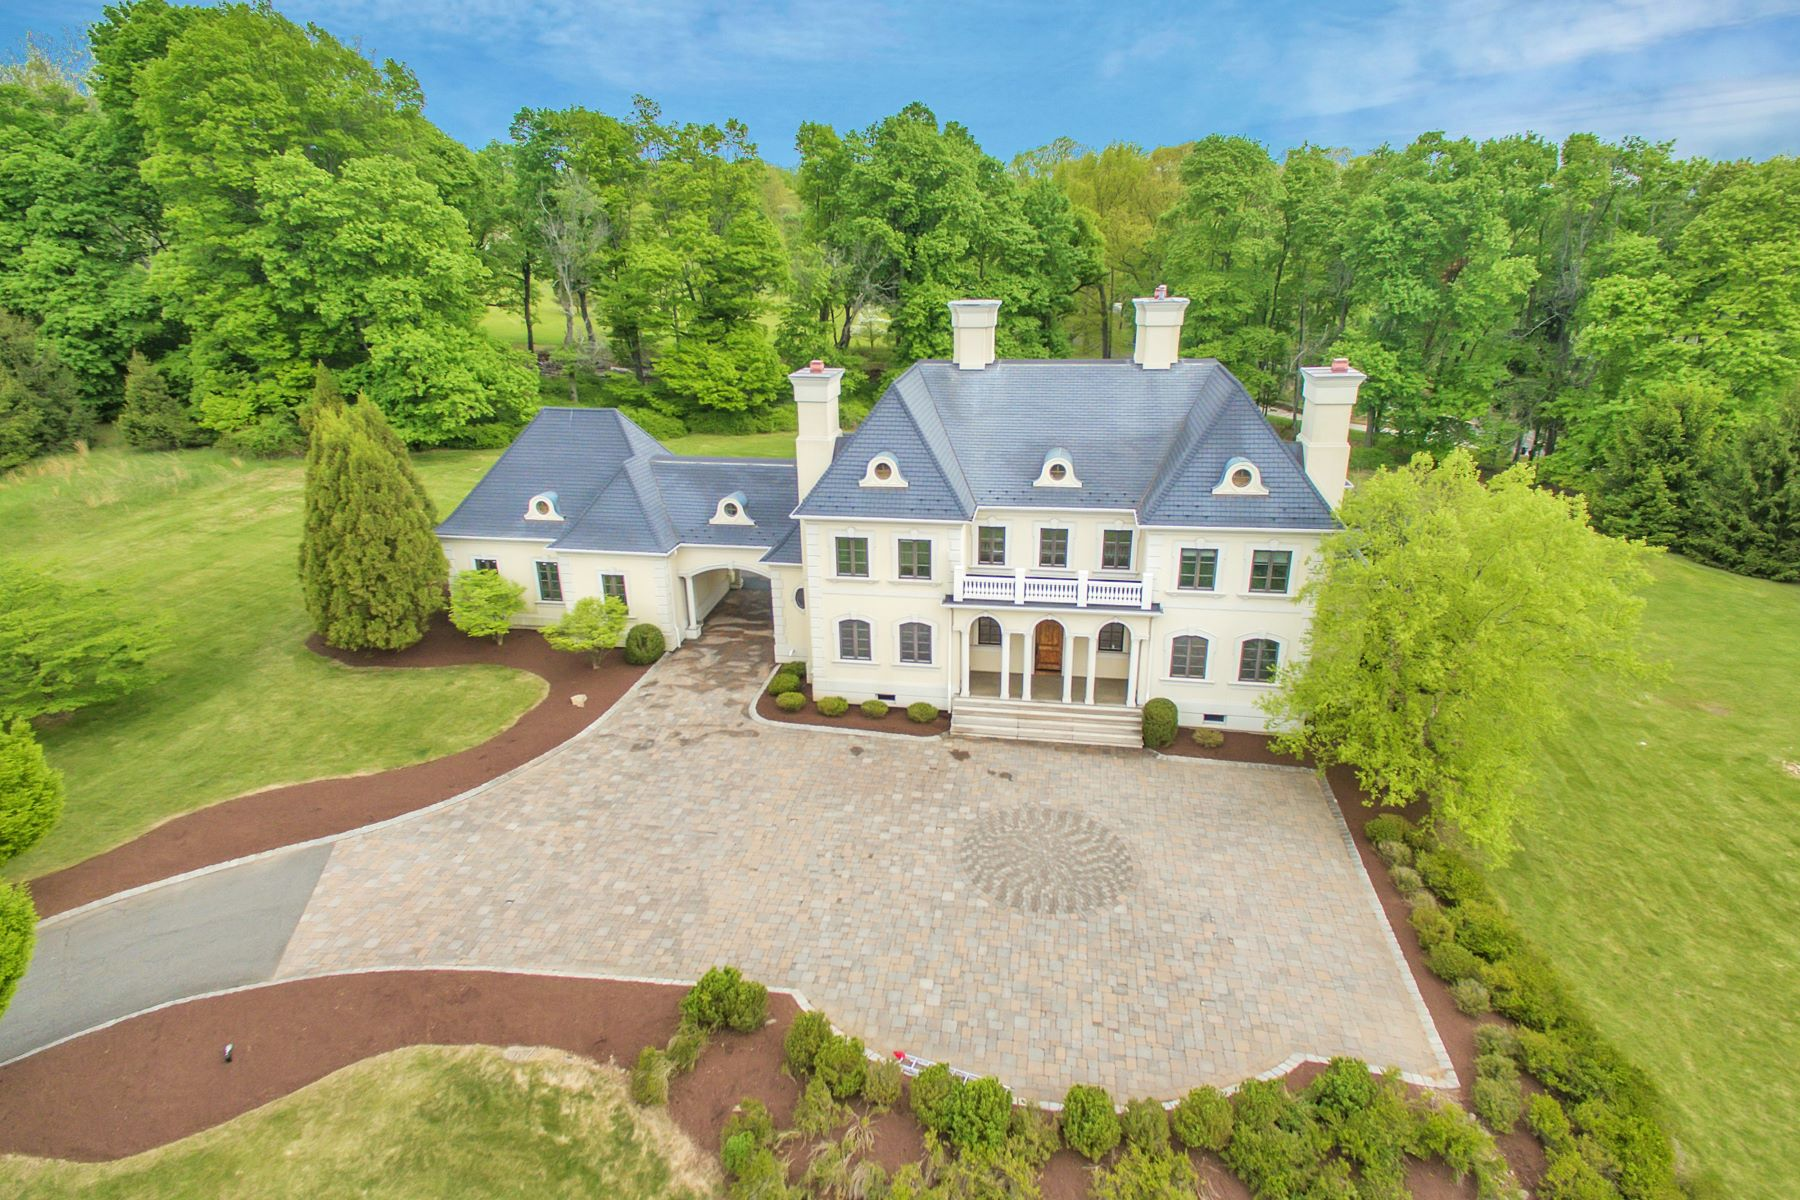 House for Sale at Palatial Residence 1 Crownview Lane Bernardsville, New Jersey 07924 United States